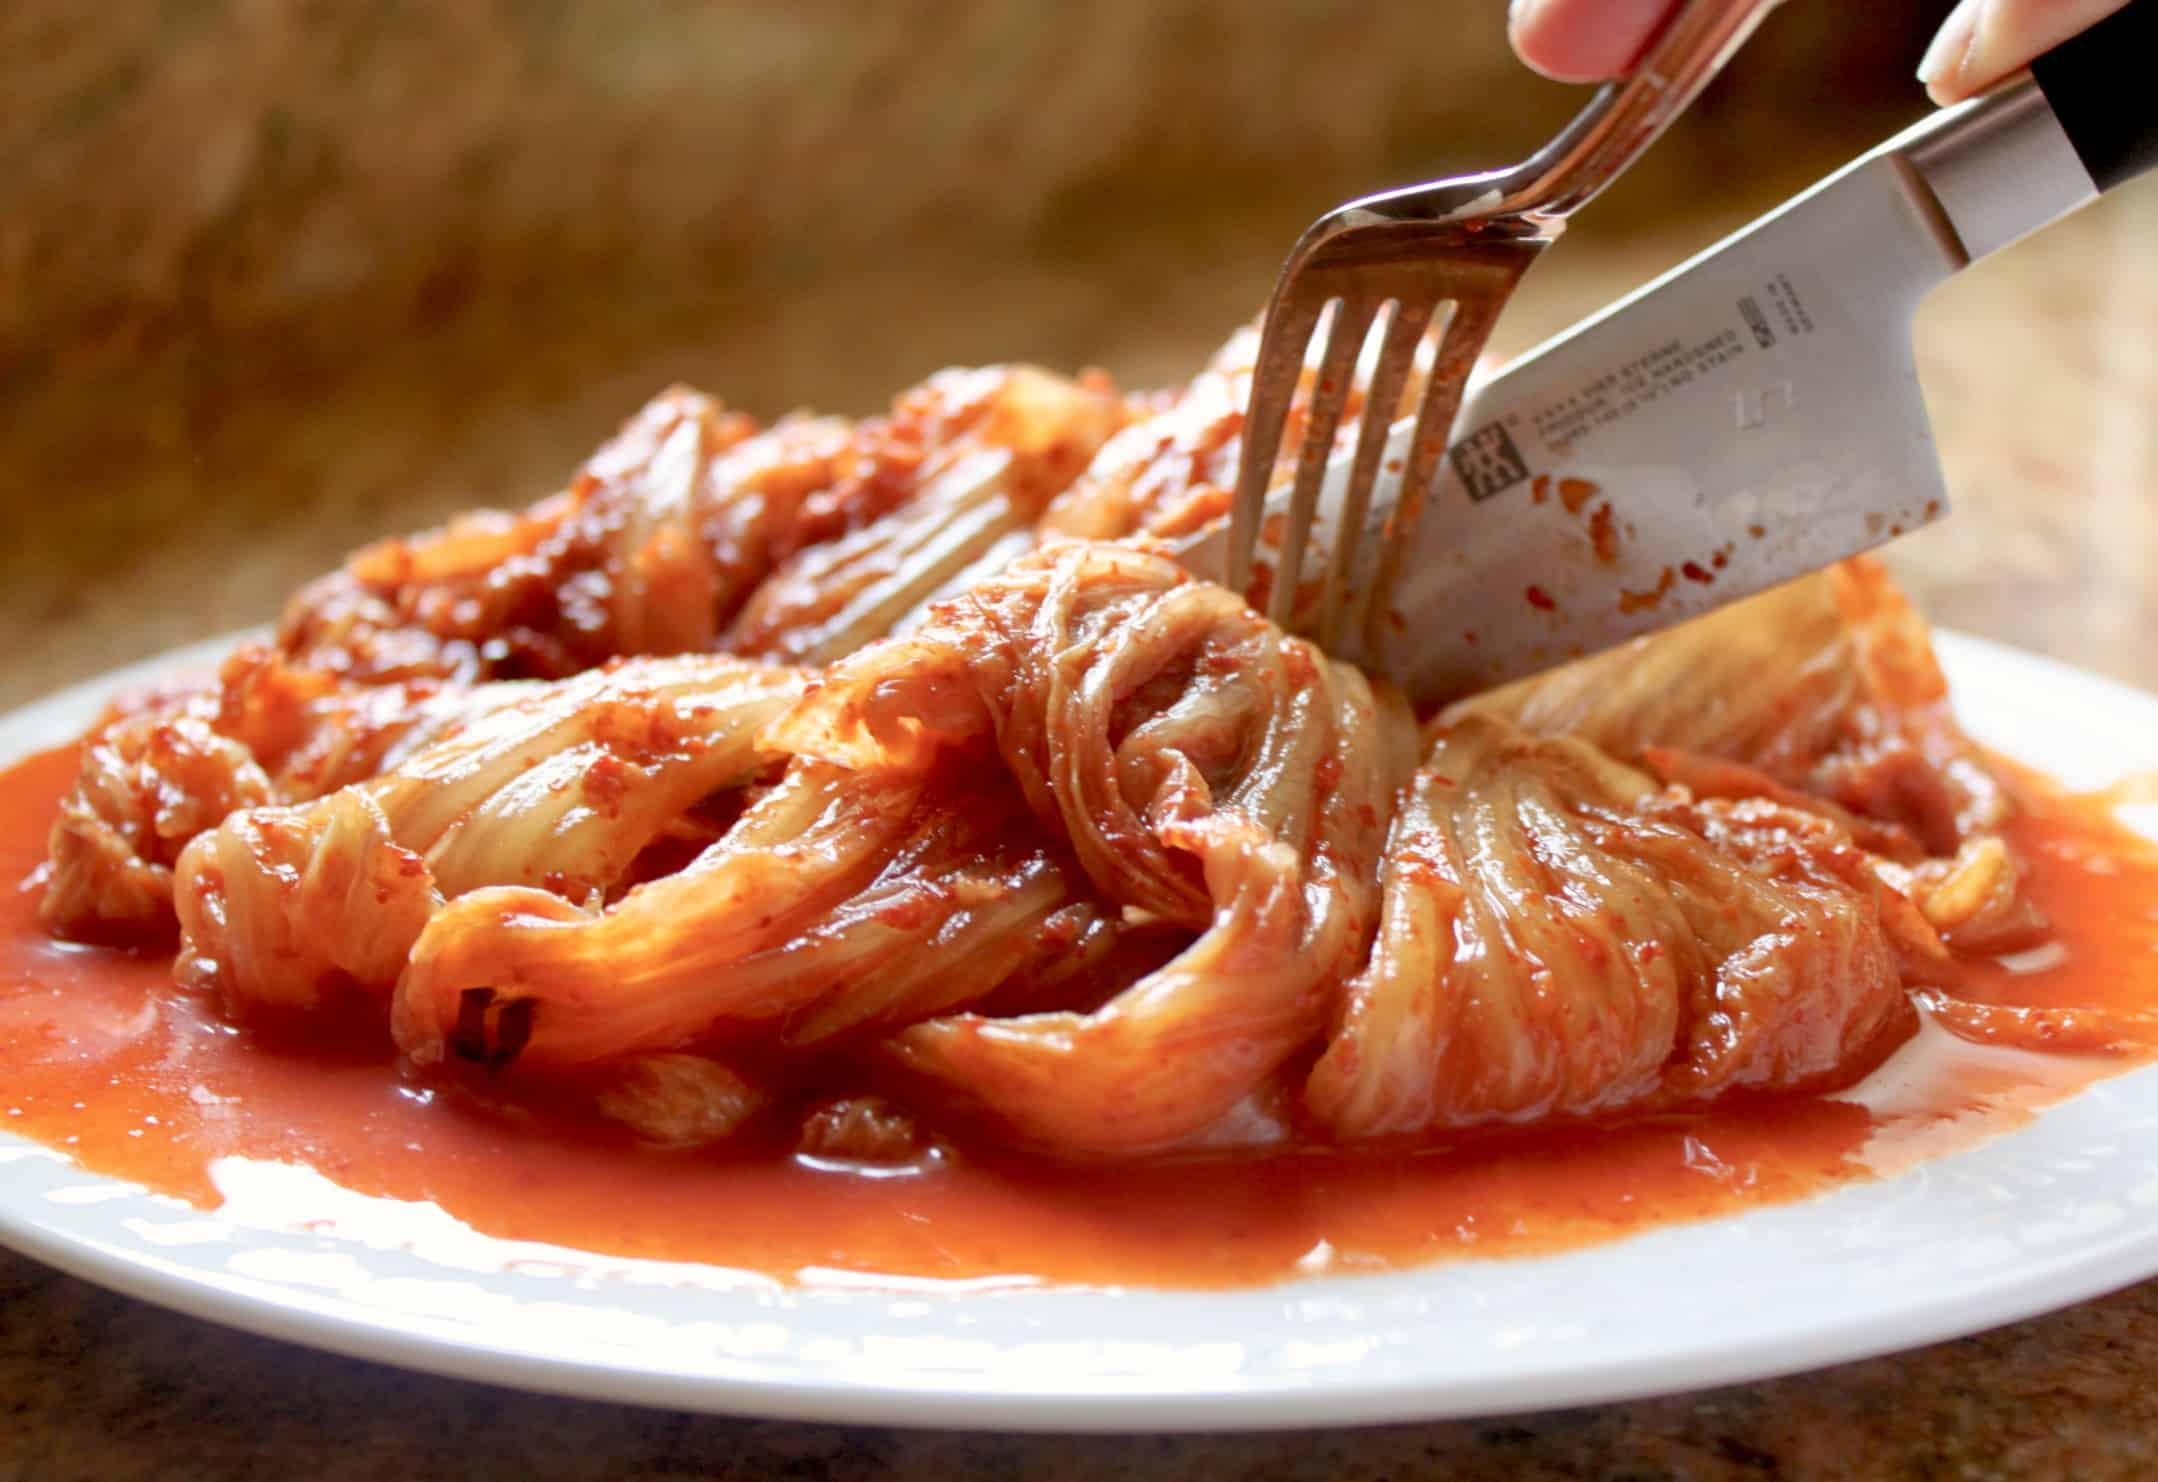 cutting kimchi on a plate